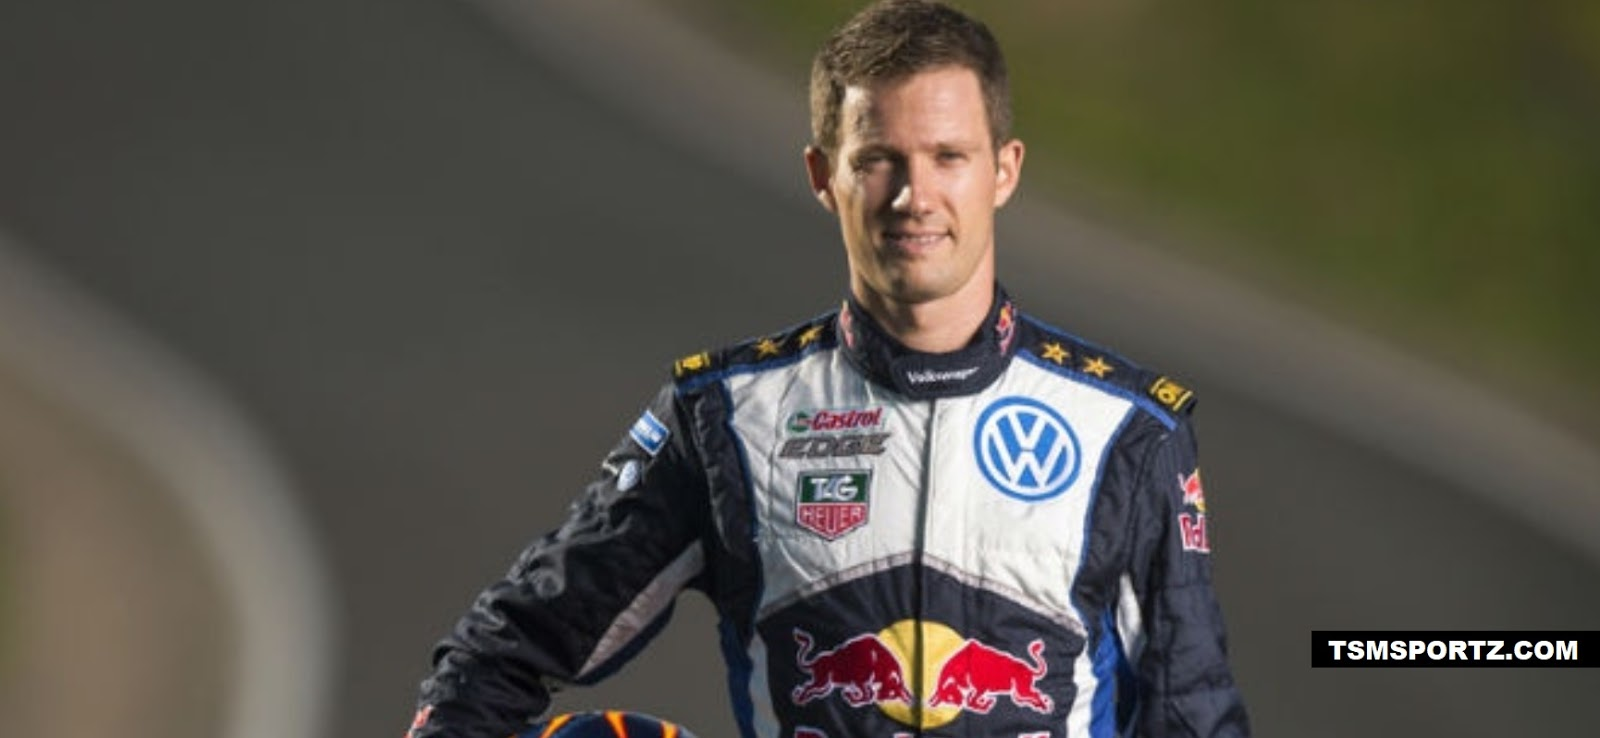 How much rich is Sabastian Ogier in 2017